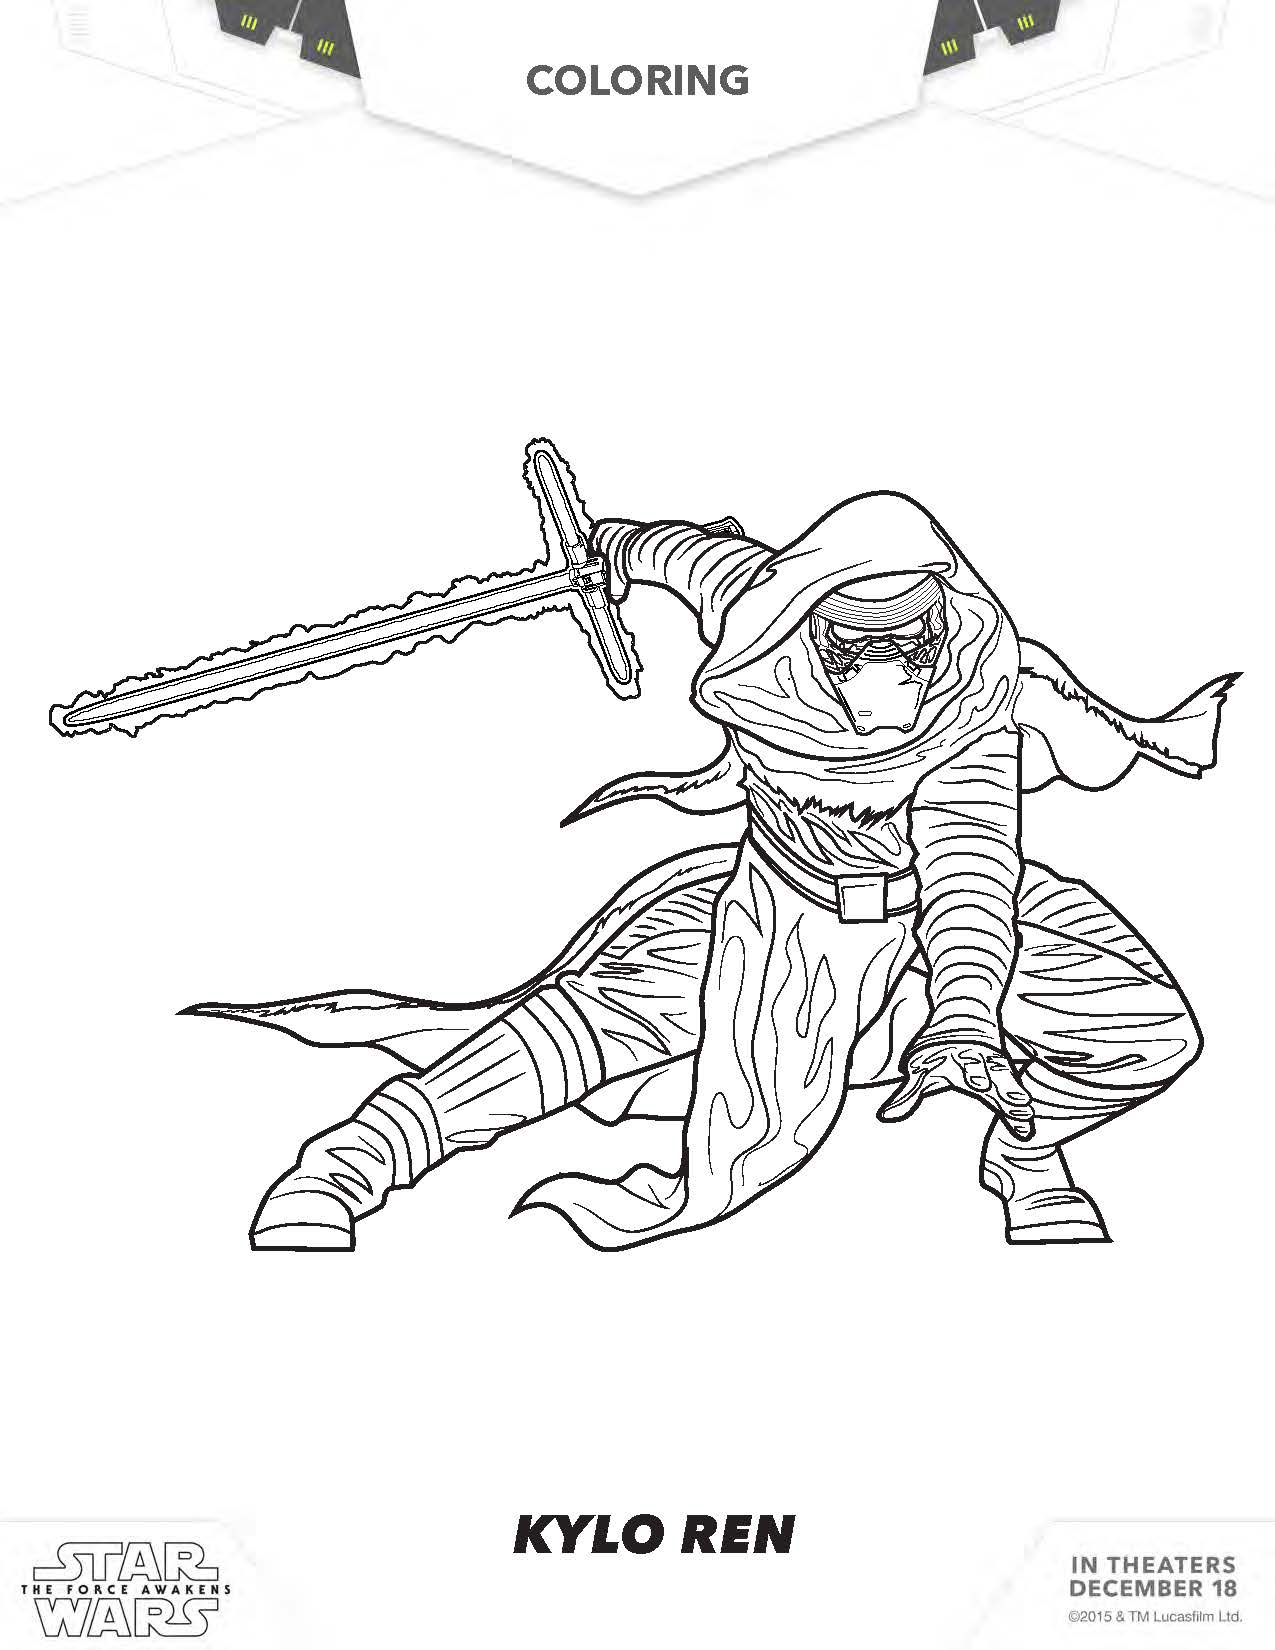 Coloring pages star wars kylo ren - Kylo Ren Coloring Page Star Wars